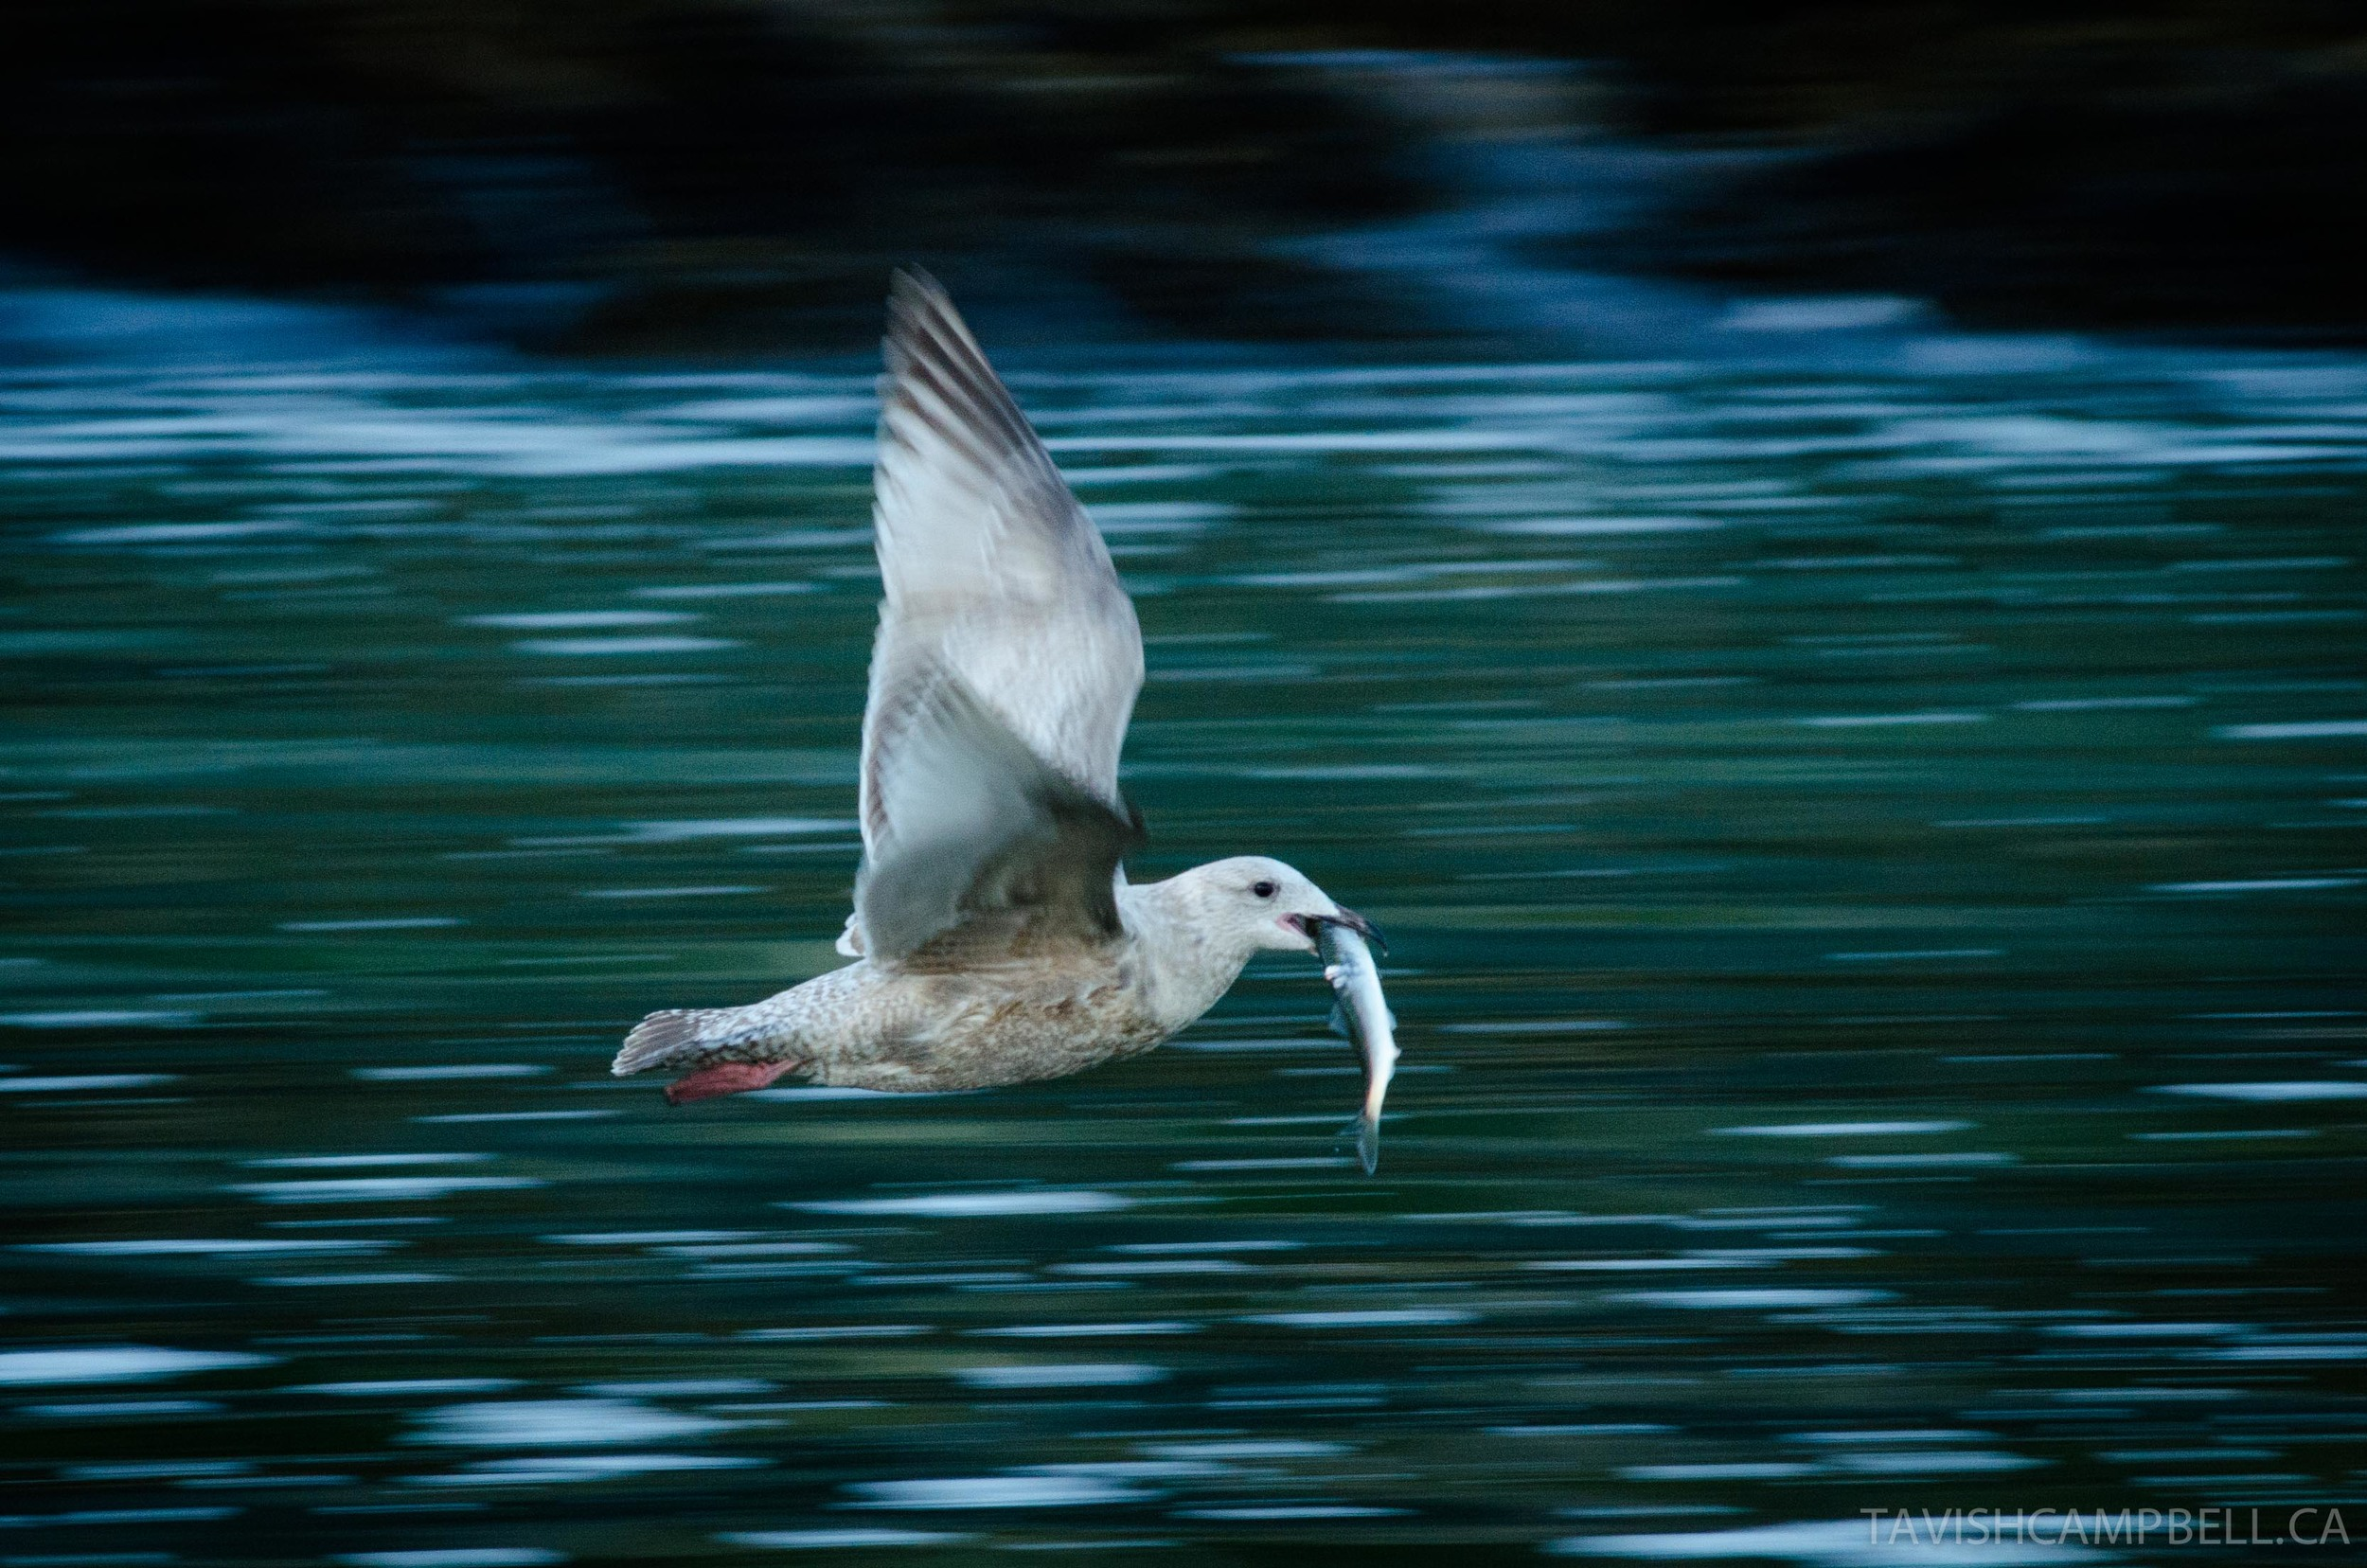 The spring herring spawn on our coast is an event of a magnitude similar to the fall return of salmon. Countless species gather to partake in the feast these small fish offer. This young herring gull is doing what it has evolved perfectly to do: eat herring.